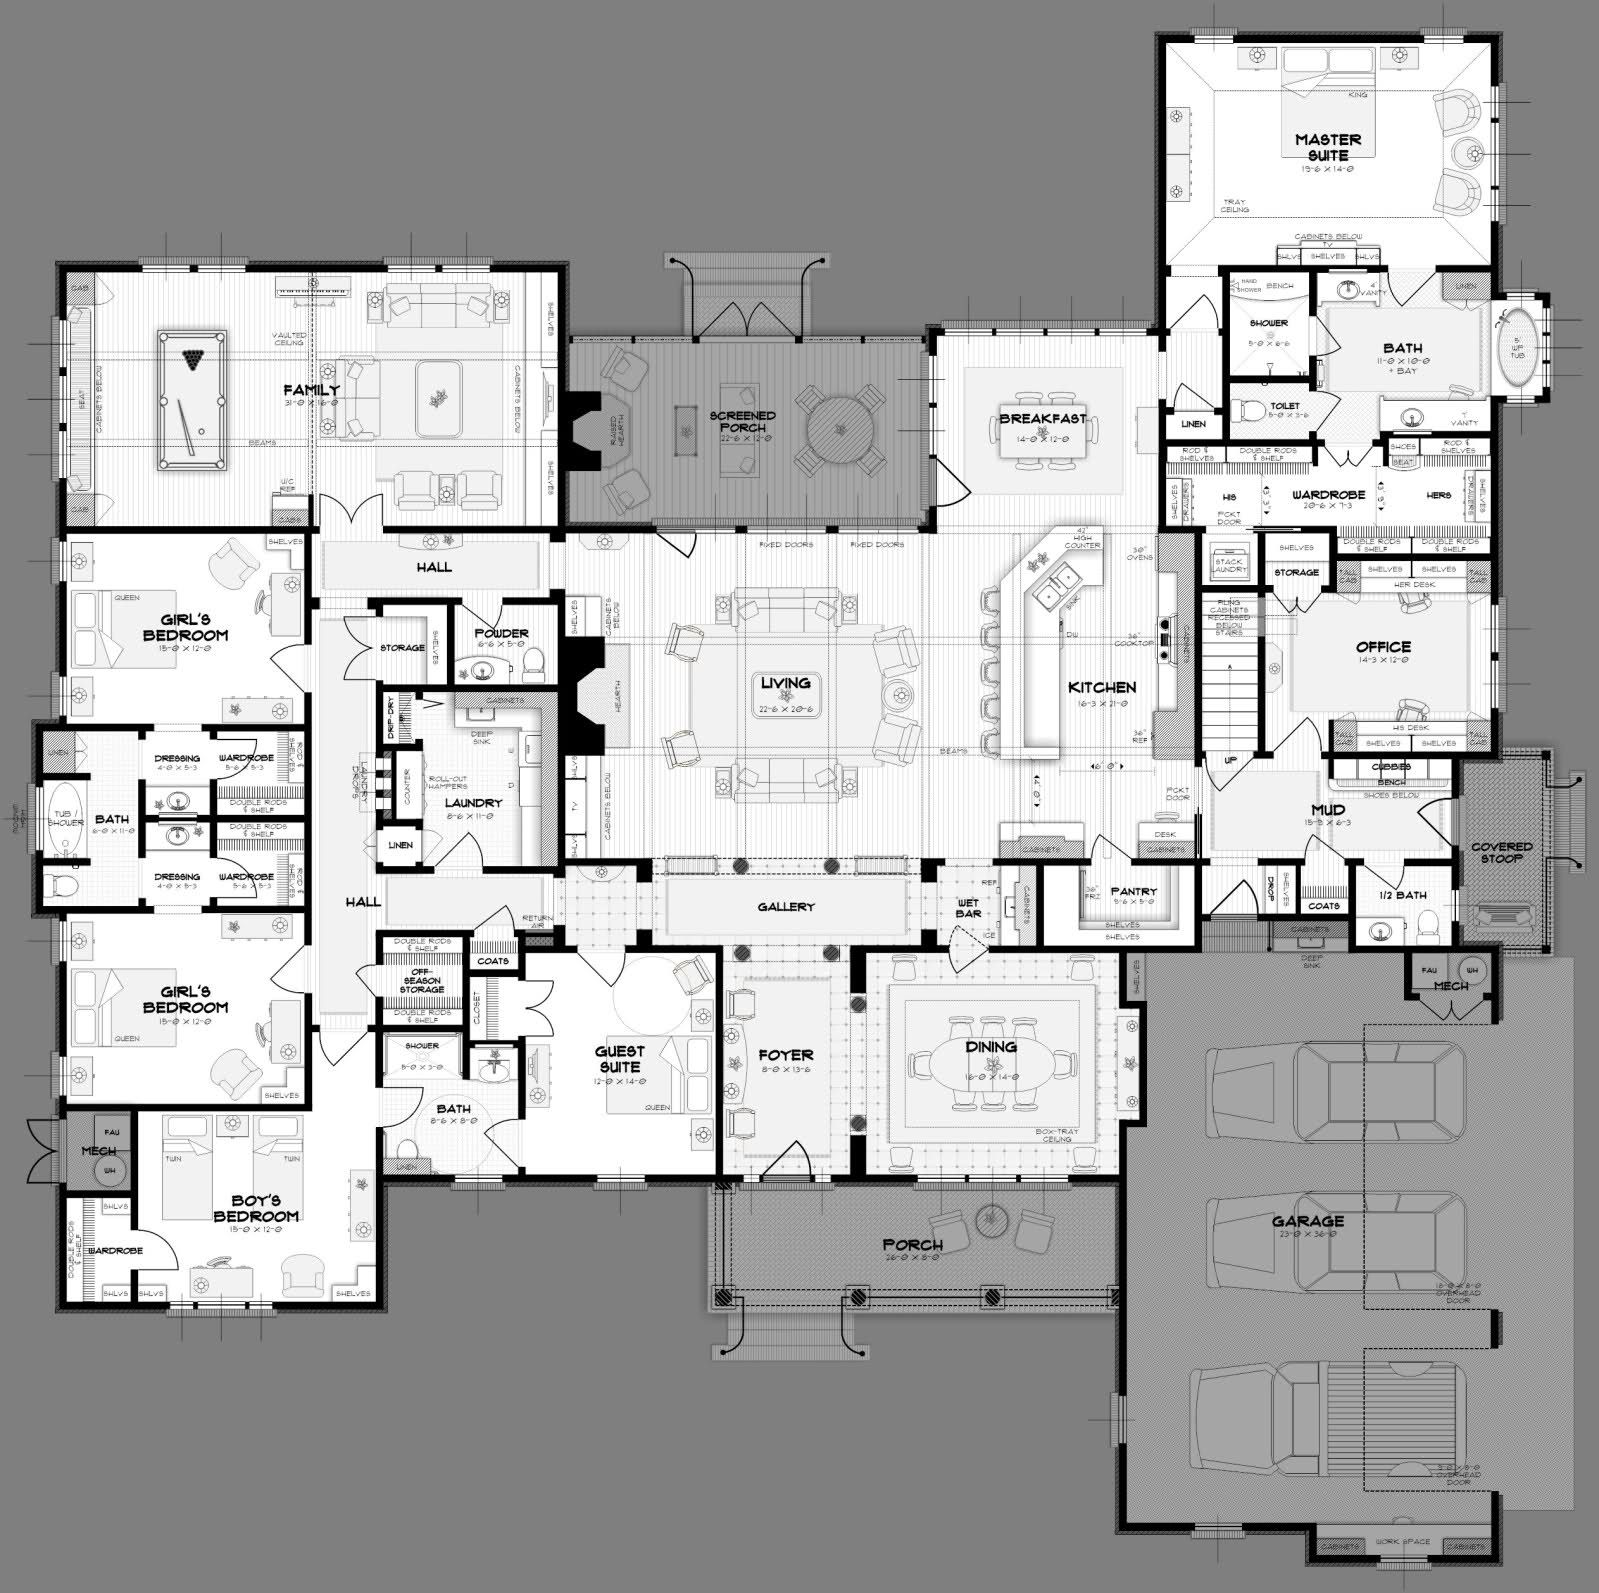 big 5 bedroom house plans my plans help needed with bedroom